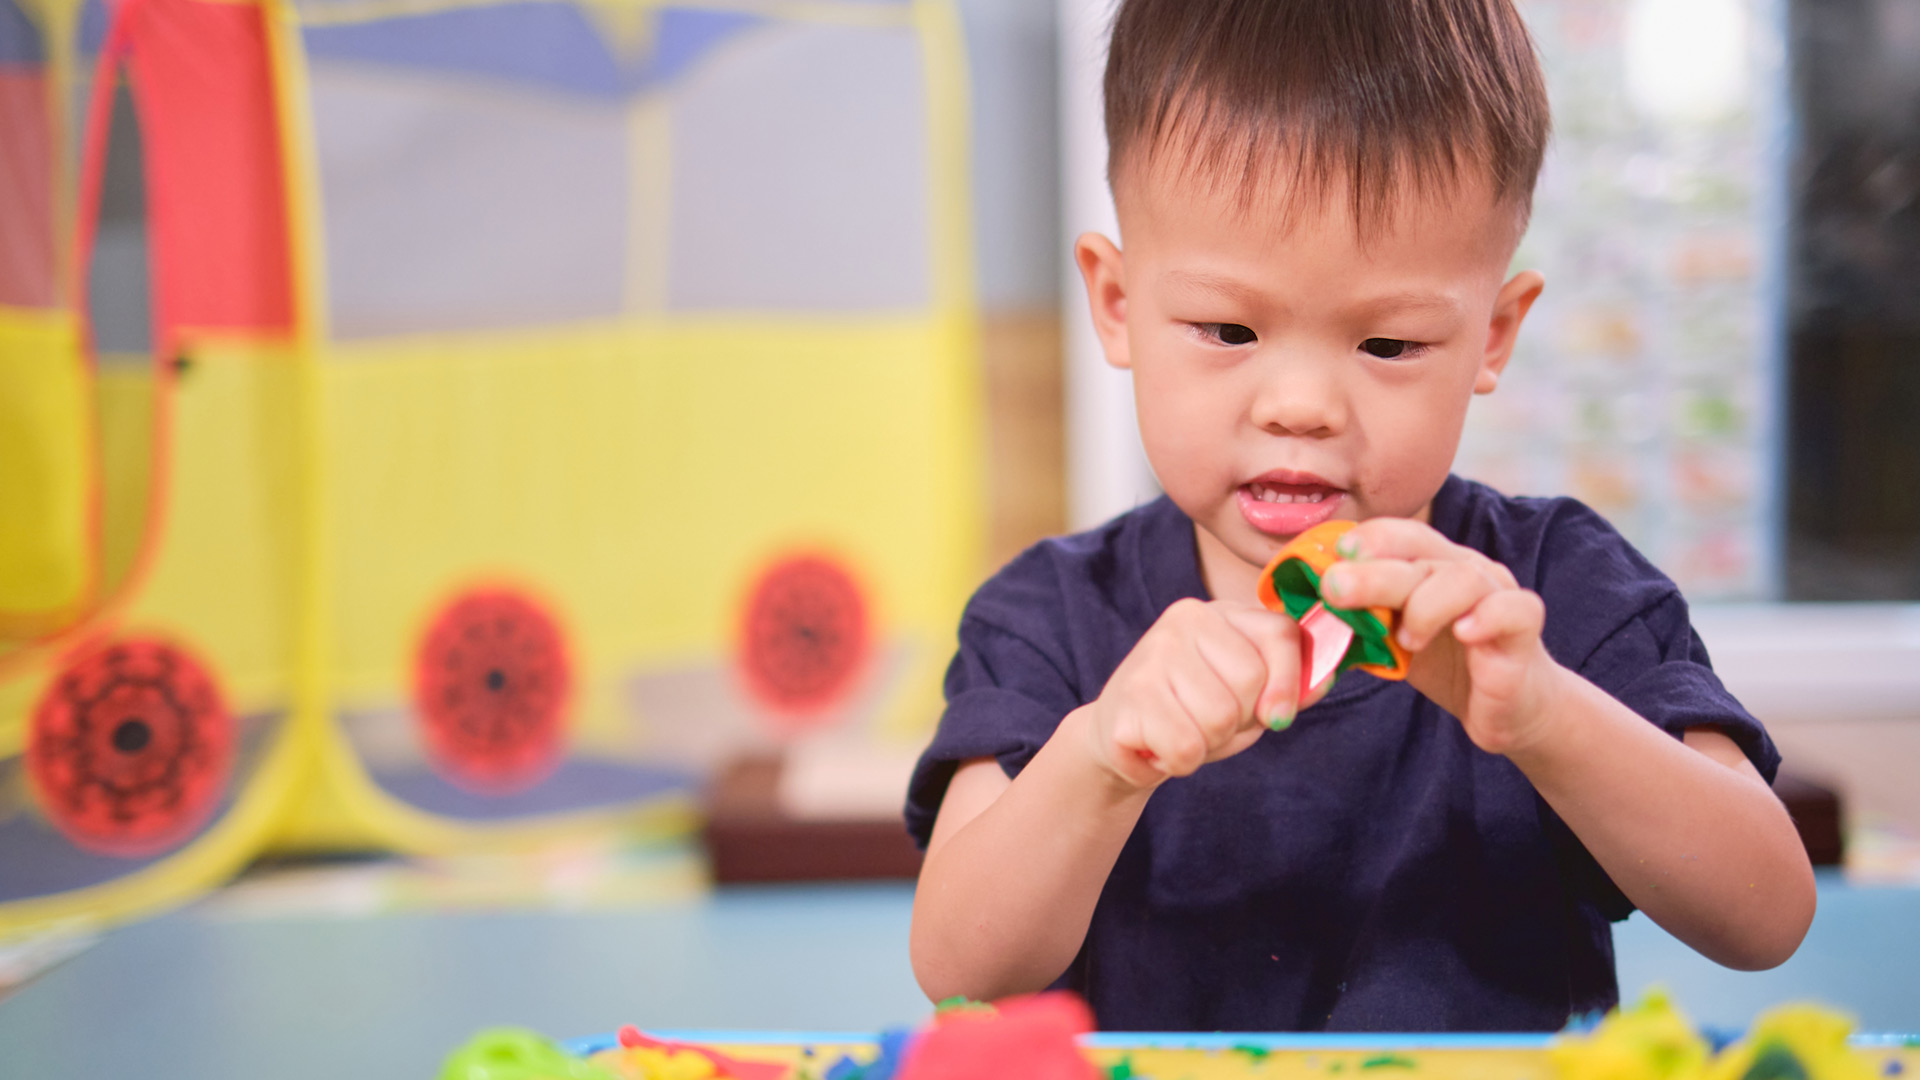 We spoke with an Atrium Health Levine Children's pediatrician to discuss what children should be doing based on their age.